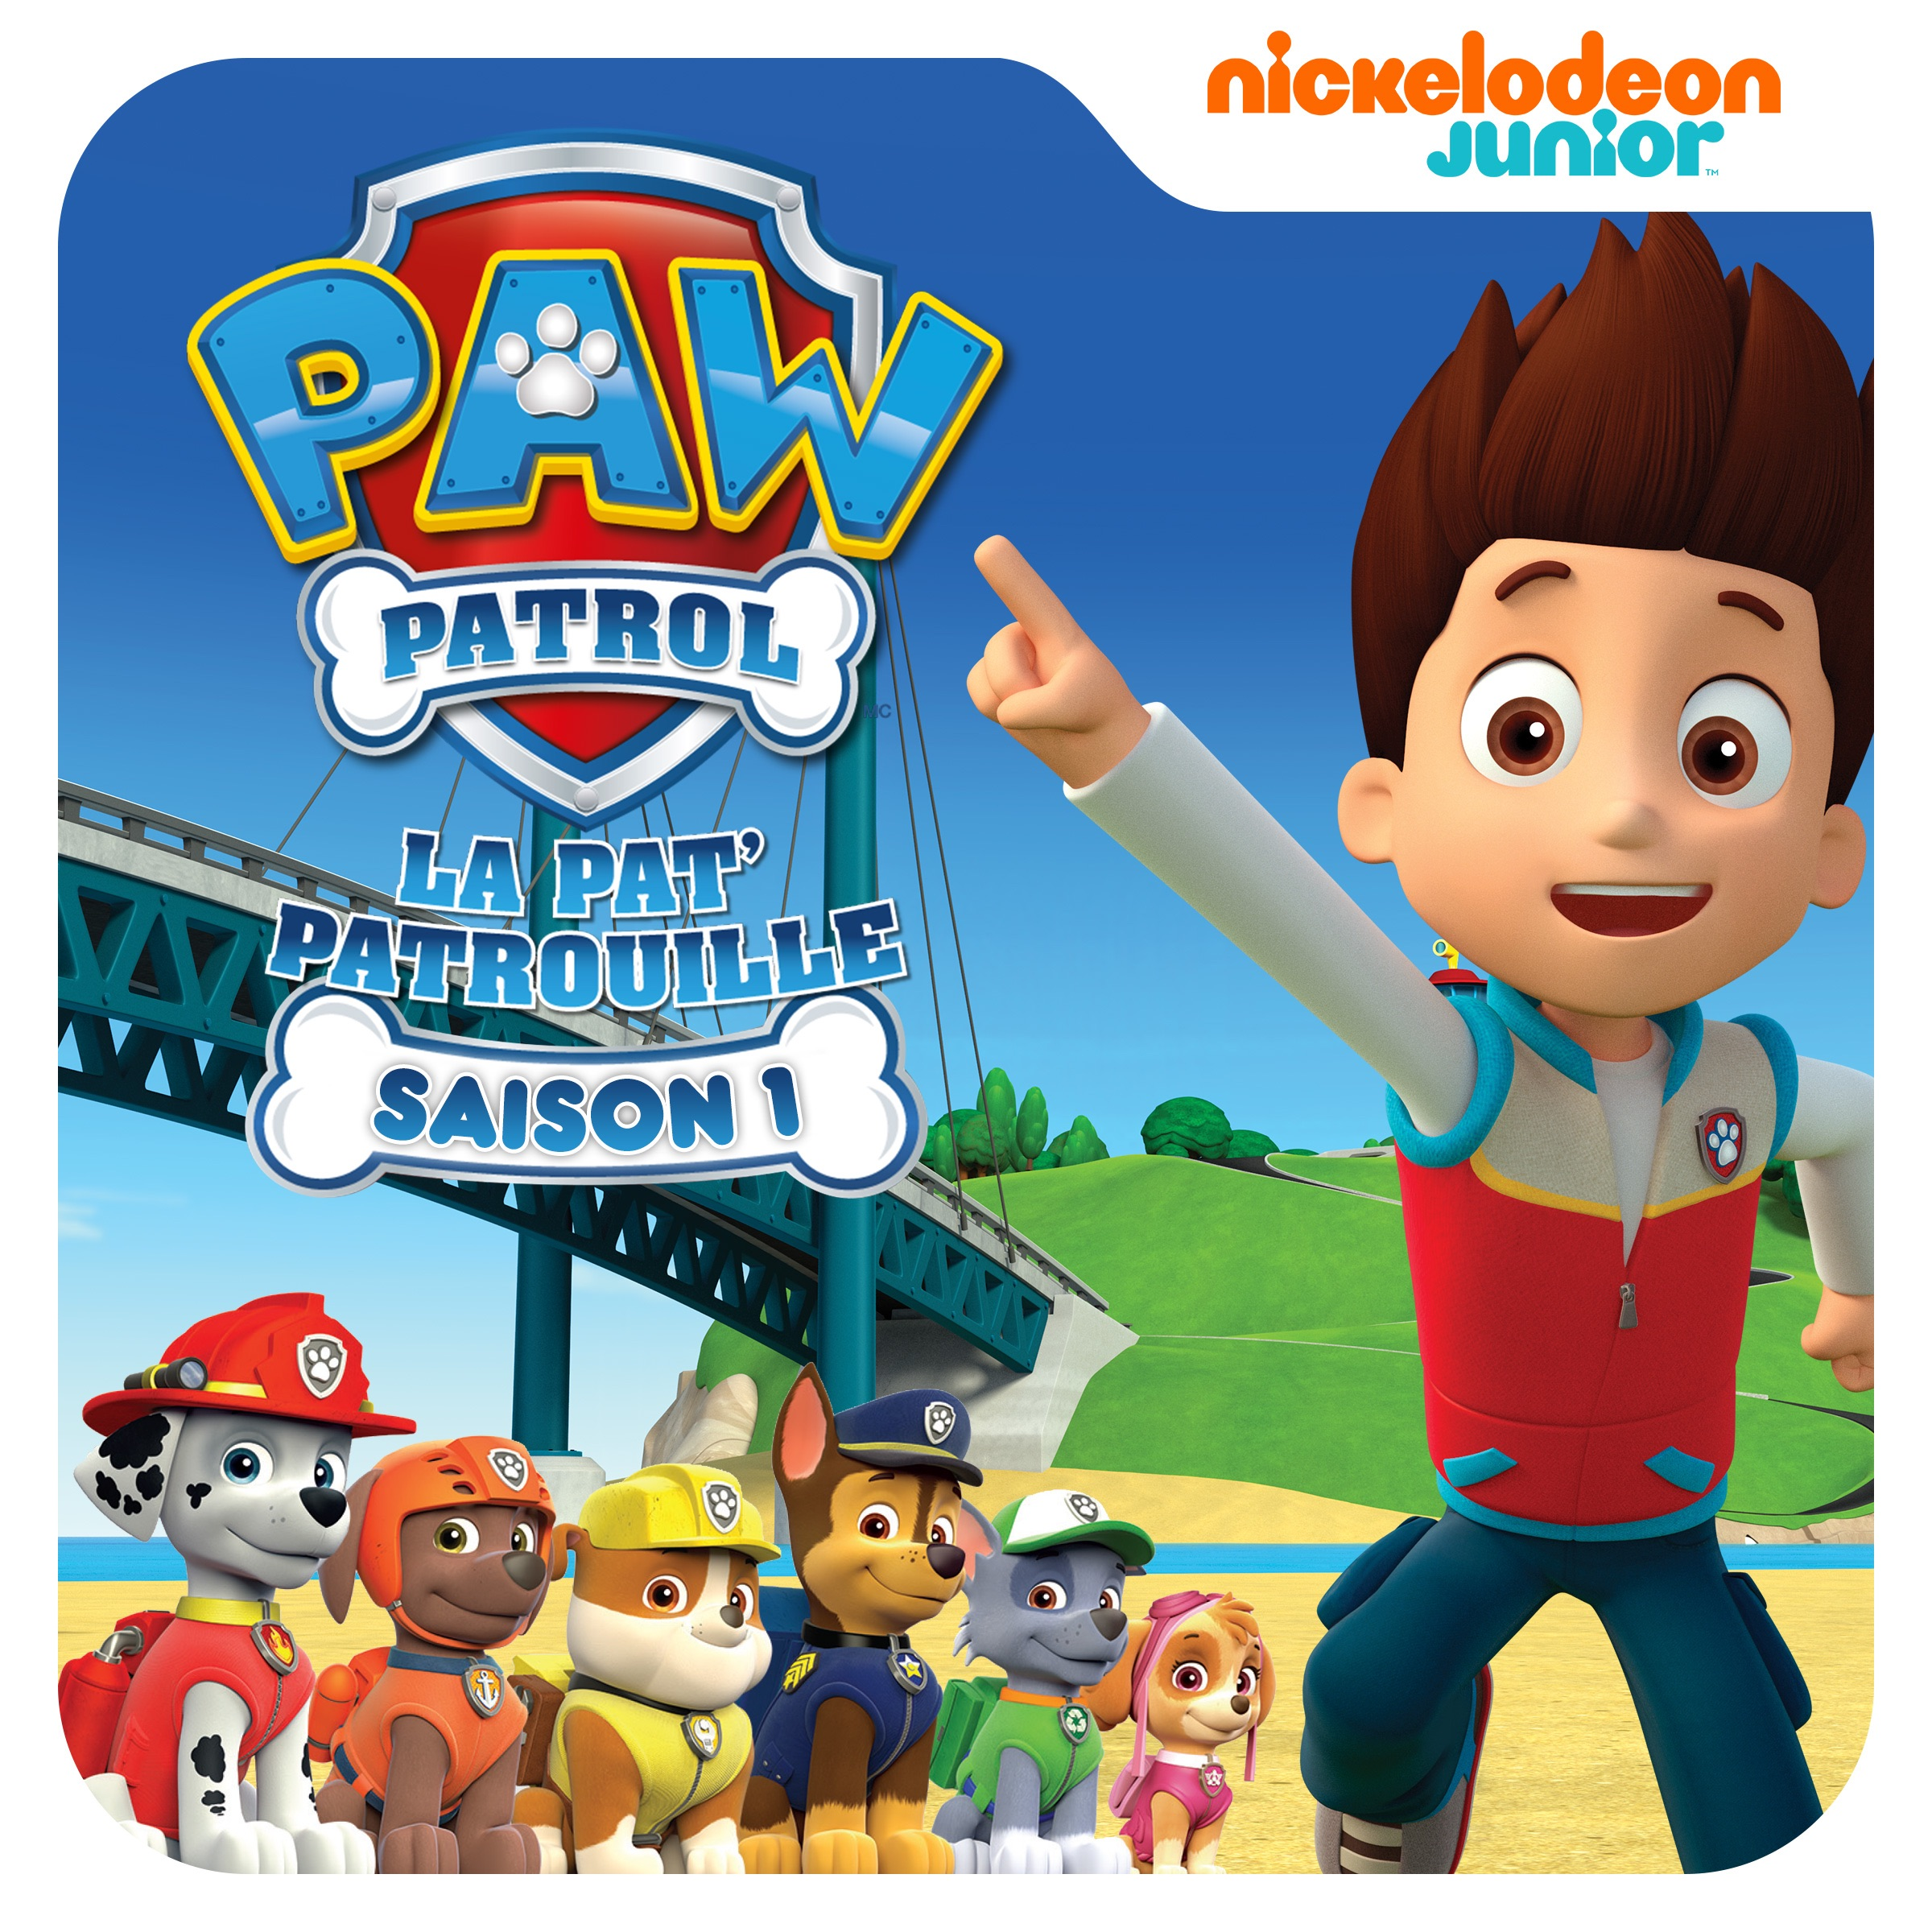 paw patrol la pat patrouille saison 1 partie 3 sur itunes. Black Bedroom Furniture Sets. Home Design Ideas